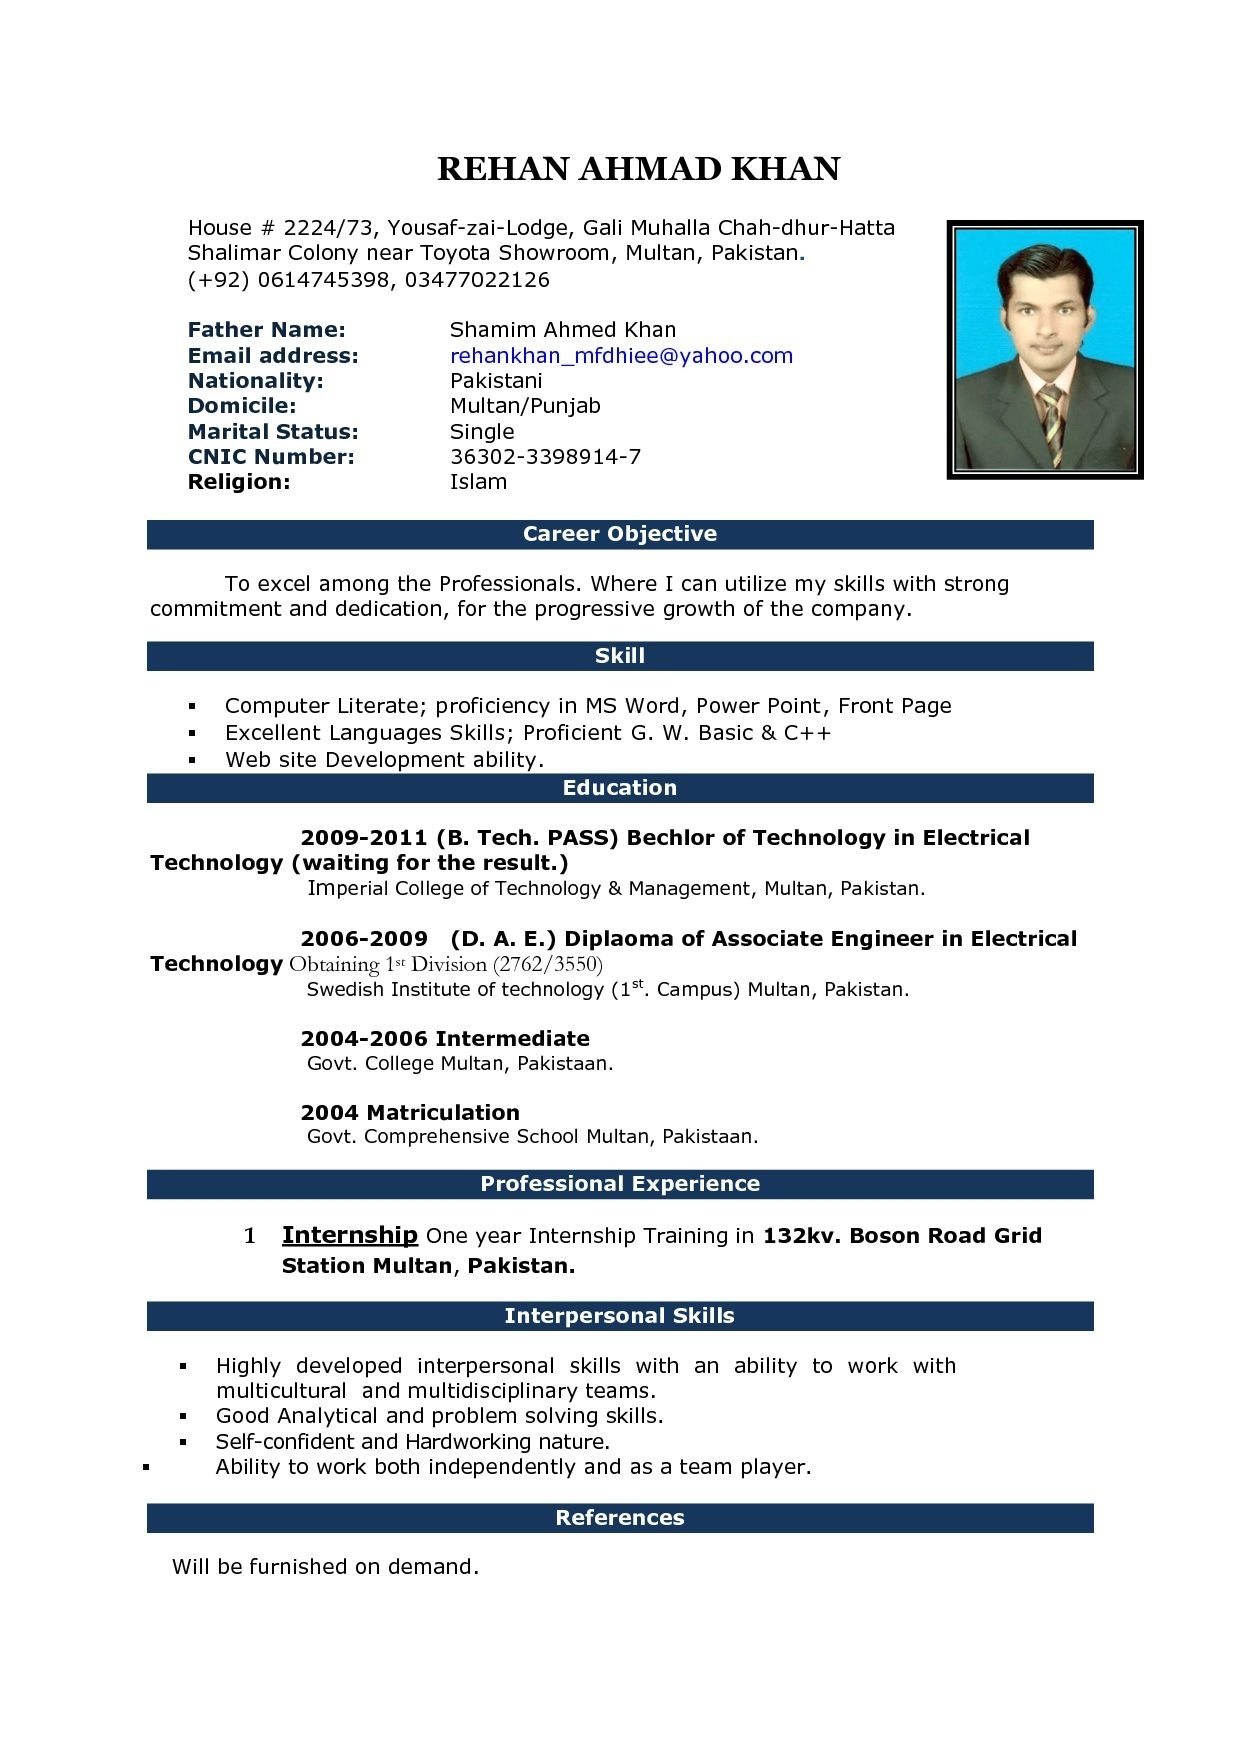 Job Resume Format Download Microsoft Word